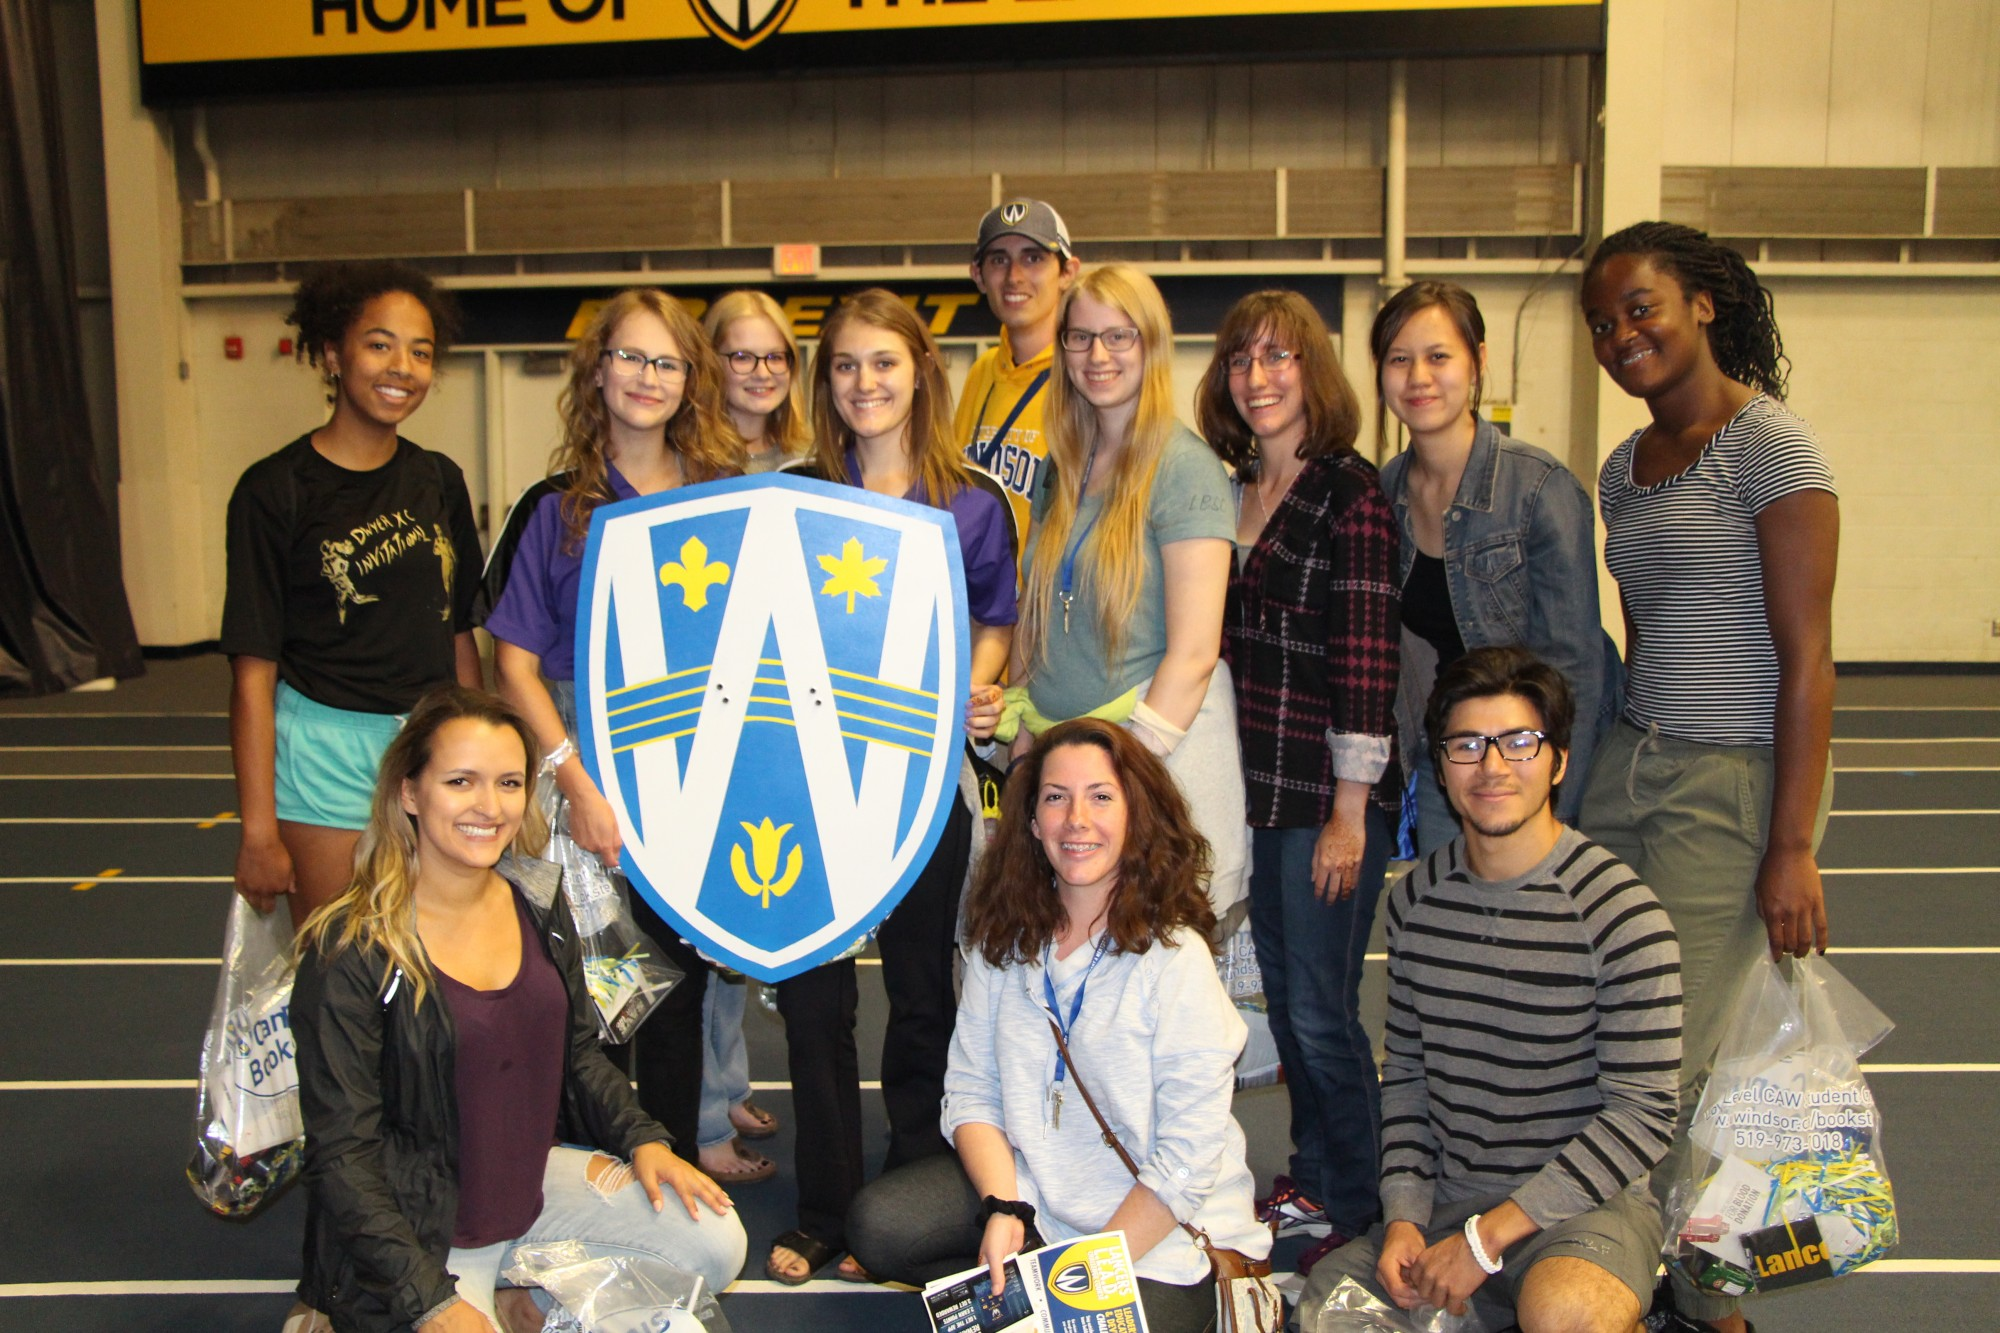 Winners of Battle of the Faculties 2017 posing with Lancer Shield.